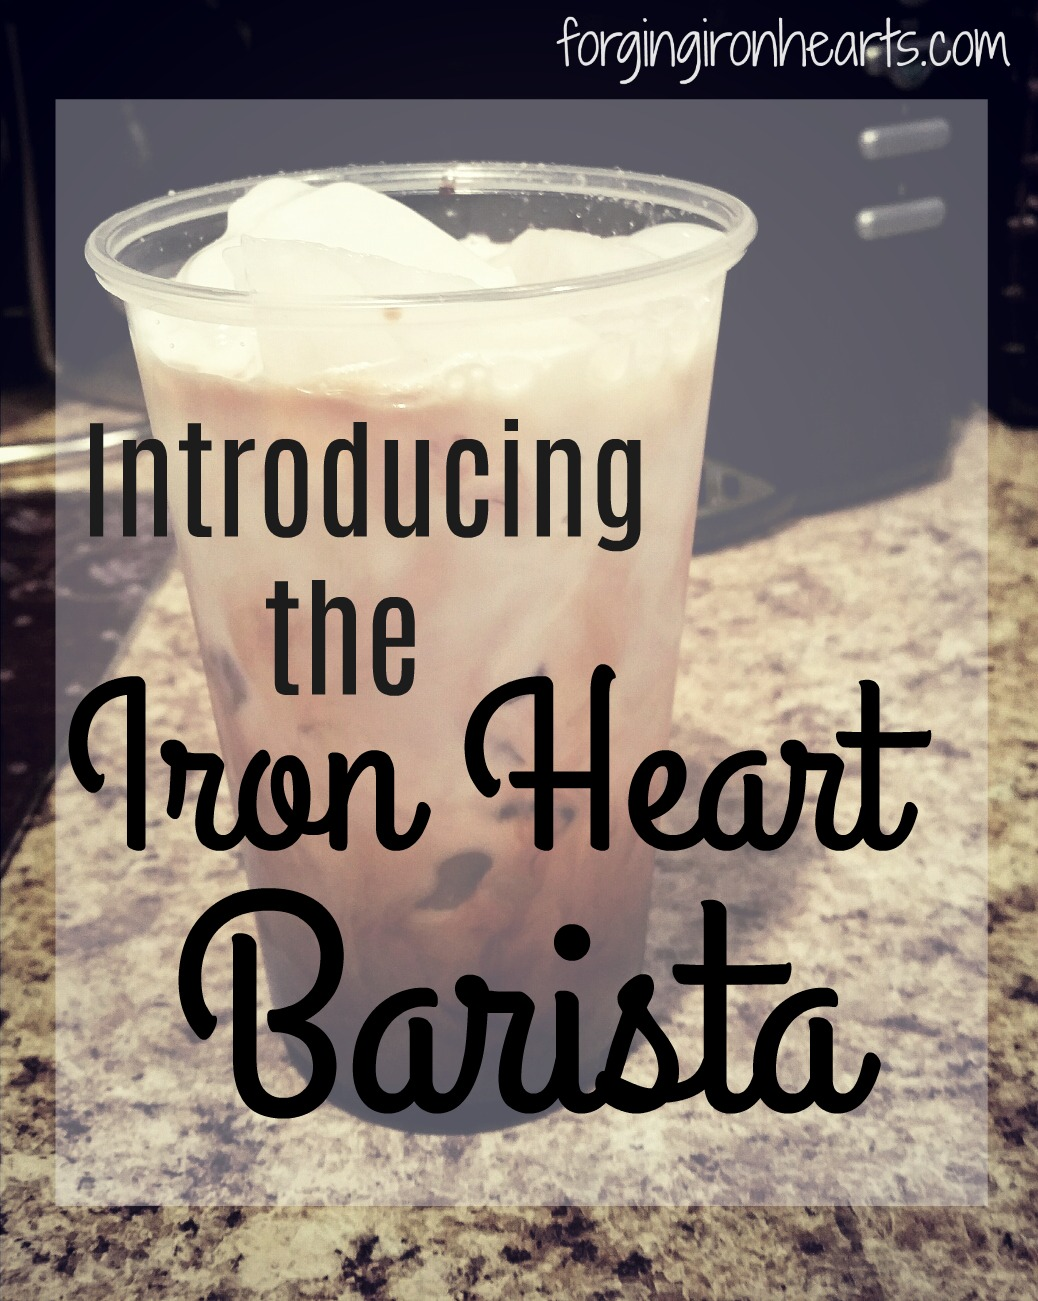 Introducing Tracy, our Iron Heart Barista